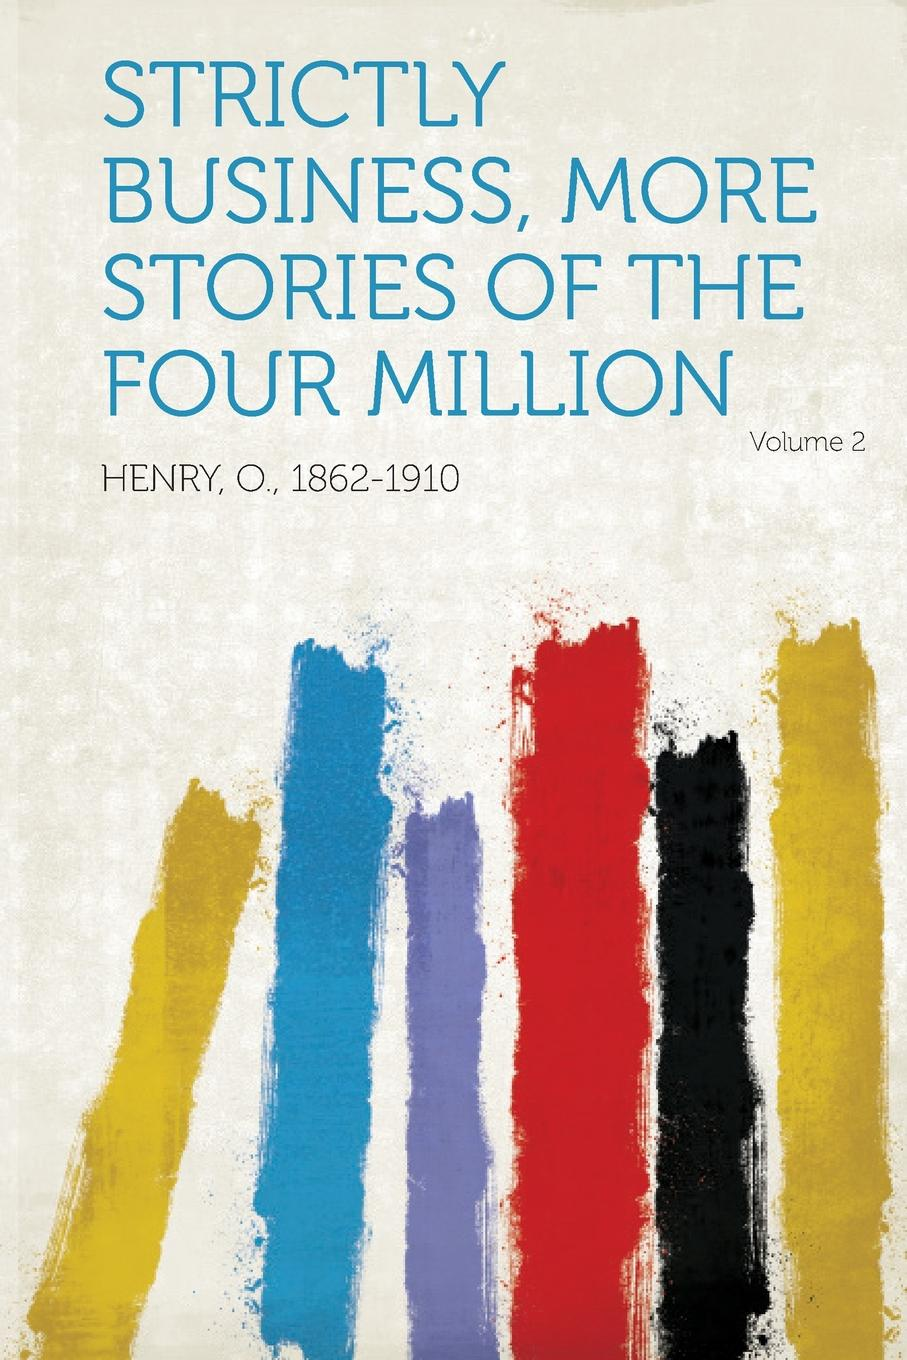 Henry O, Henry O. Strictly Business, More Stories of the Four Million Volume 2